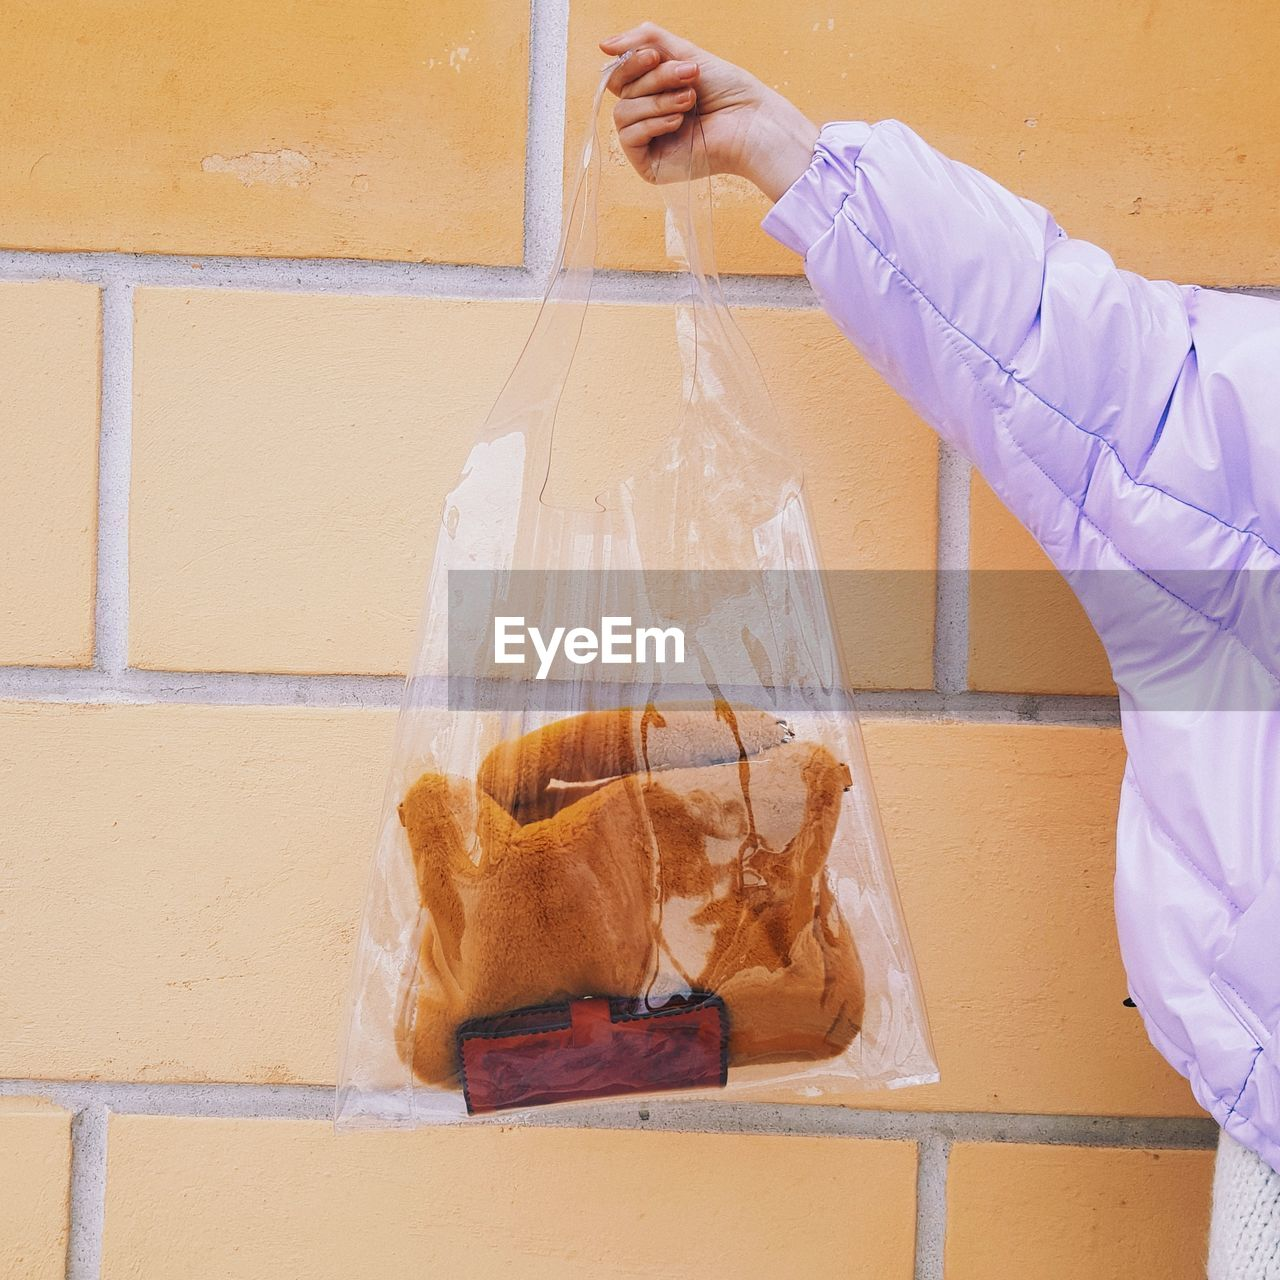 Cropped hand of woman holding warm clothing with purse in plastic bag against orange wall